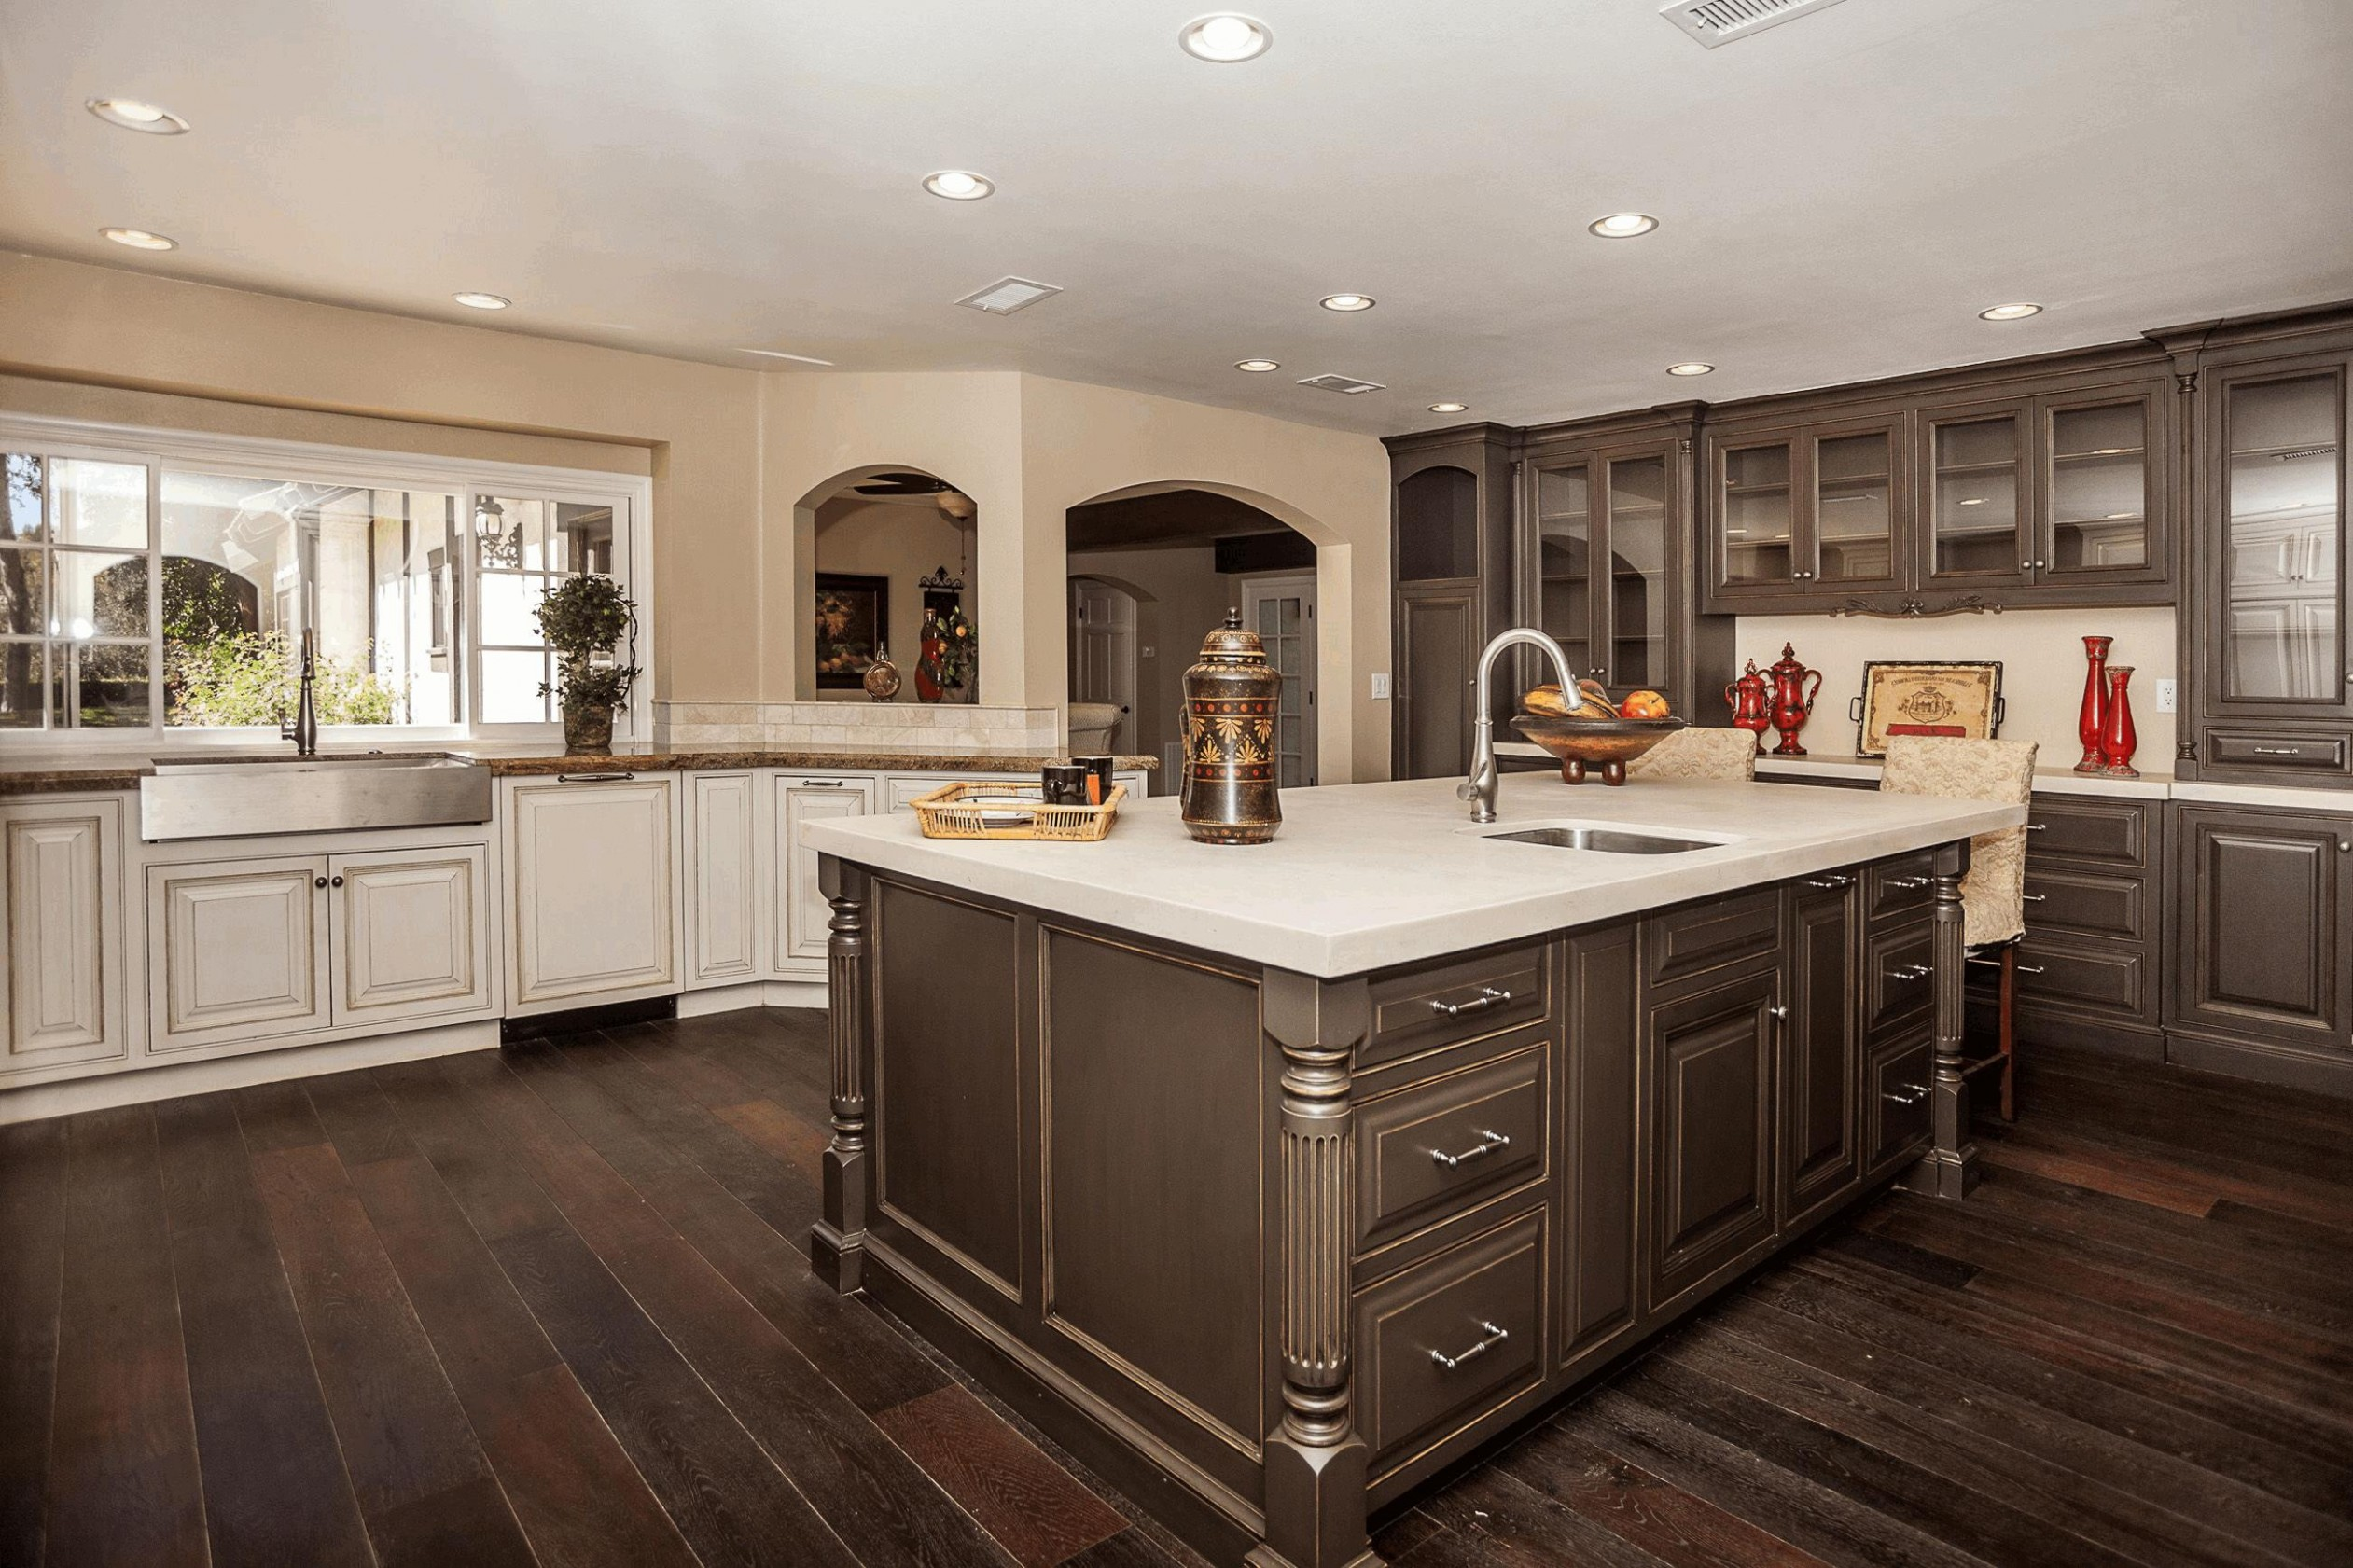 11 Unique Antique White Cabinets with Dark Hardwood Floors  - Kitchen Cabinets With Dark Floors